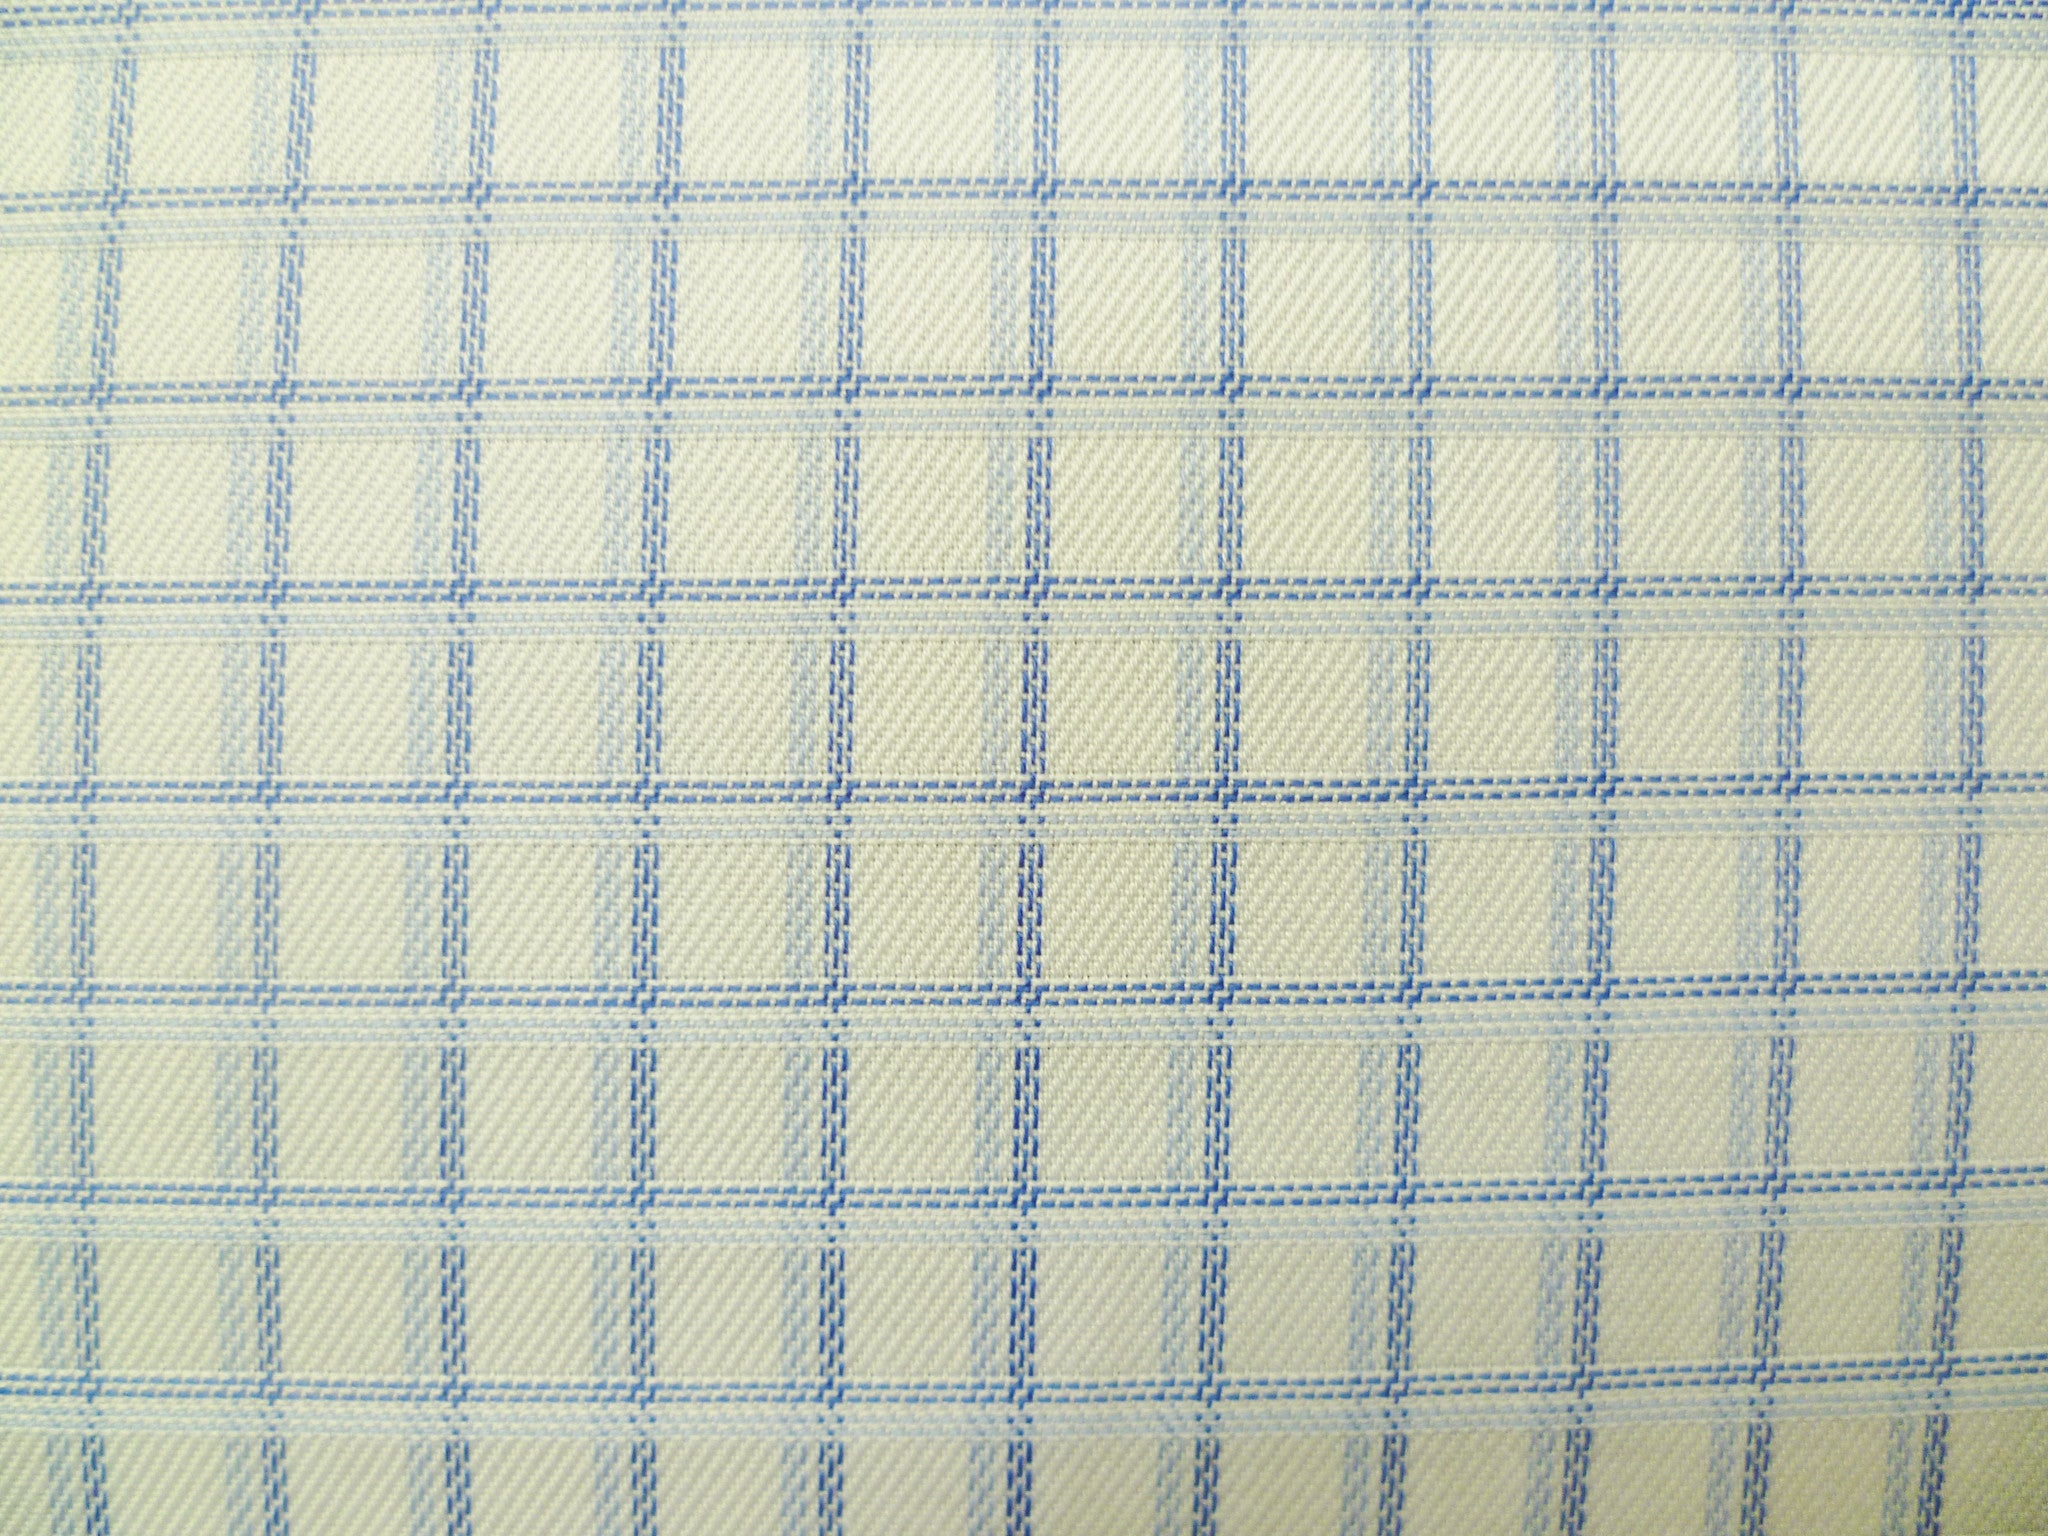 Navy, Baby Blue and White Checked Cotton